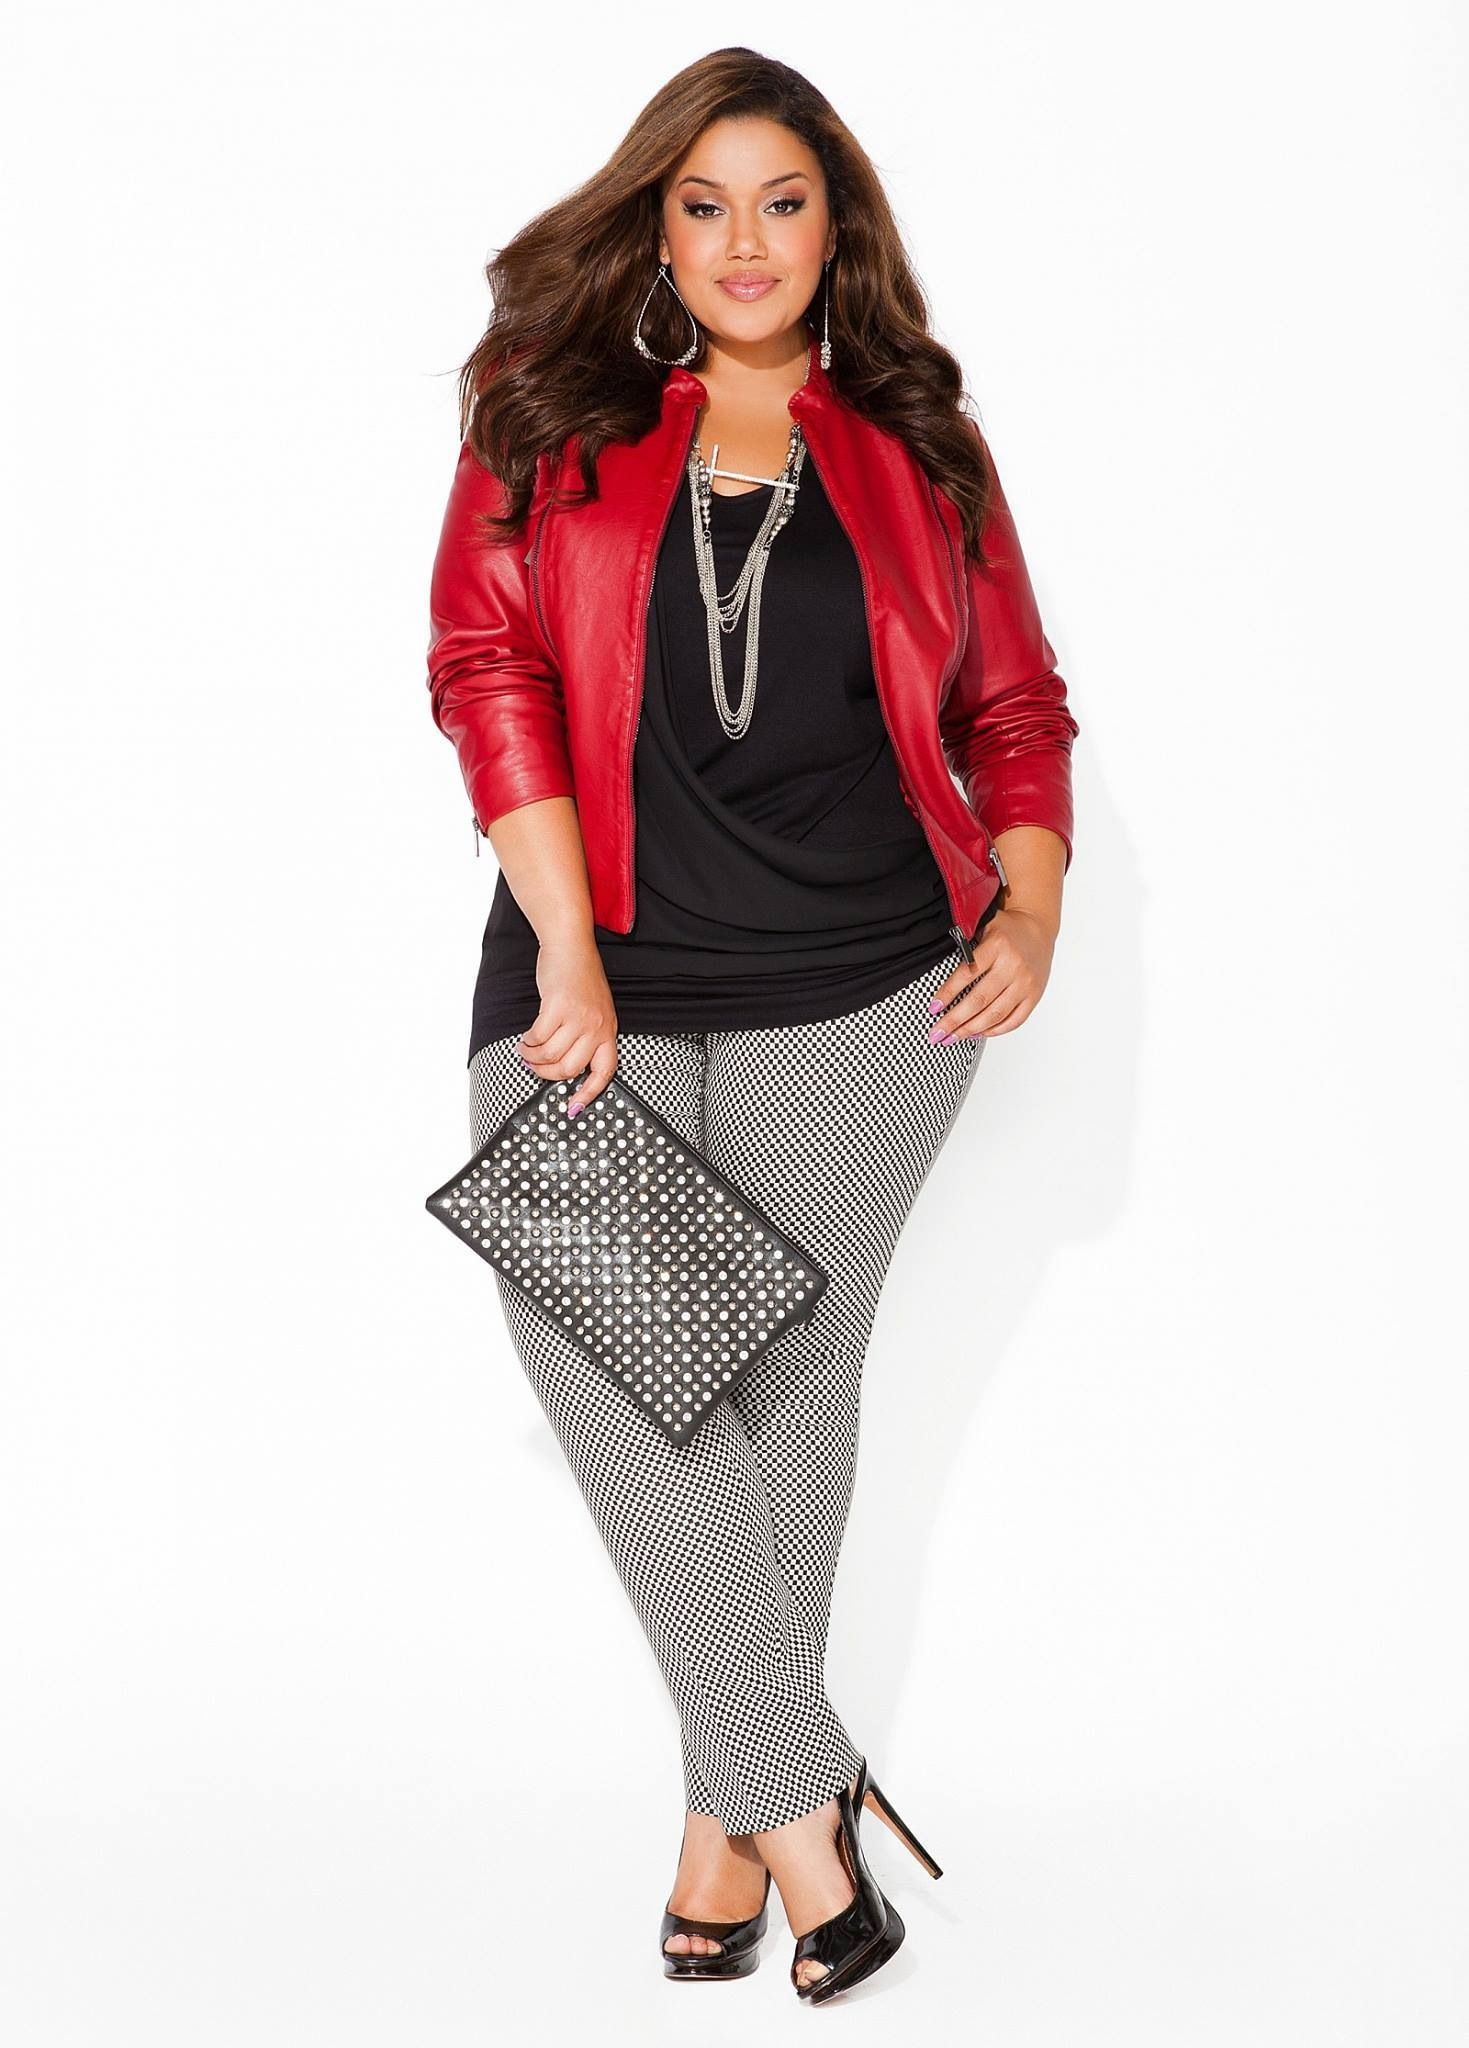 Trendy plus Size Clothing in Today s Era